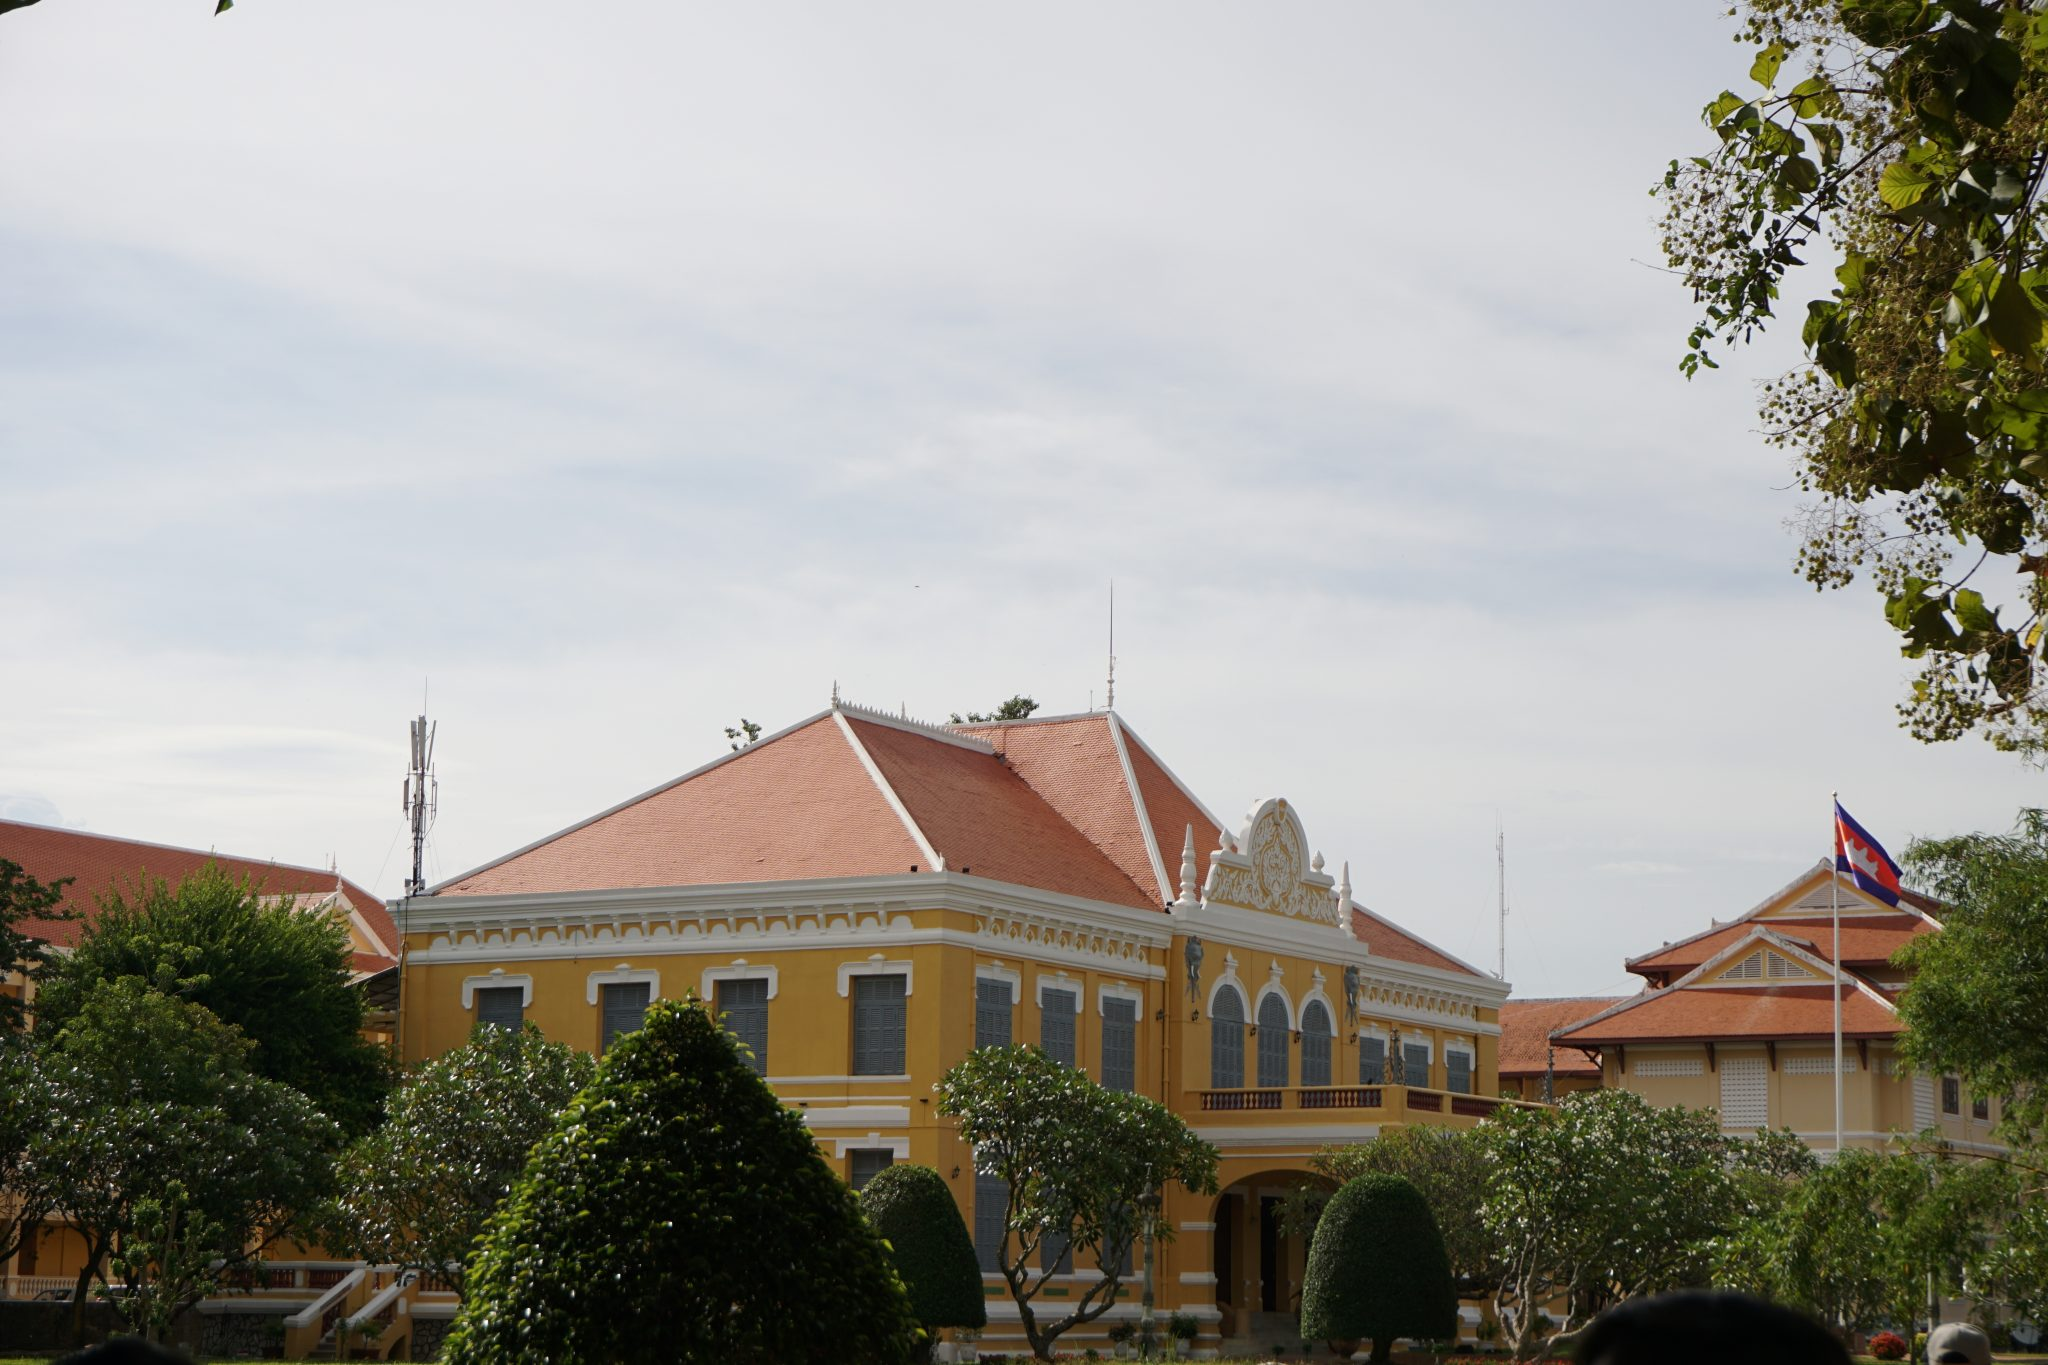 The Sala Khaet remains a highlight of Battambang's stock of surprisingly well-preserved colonial architecture. Visit SoutheastAsia.